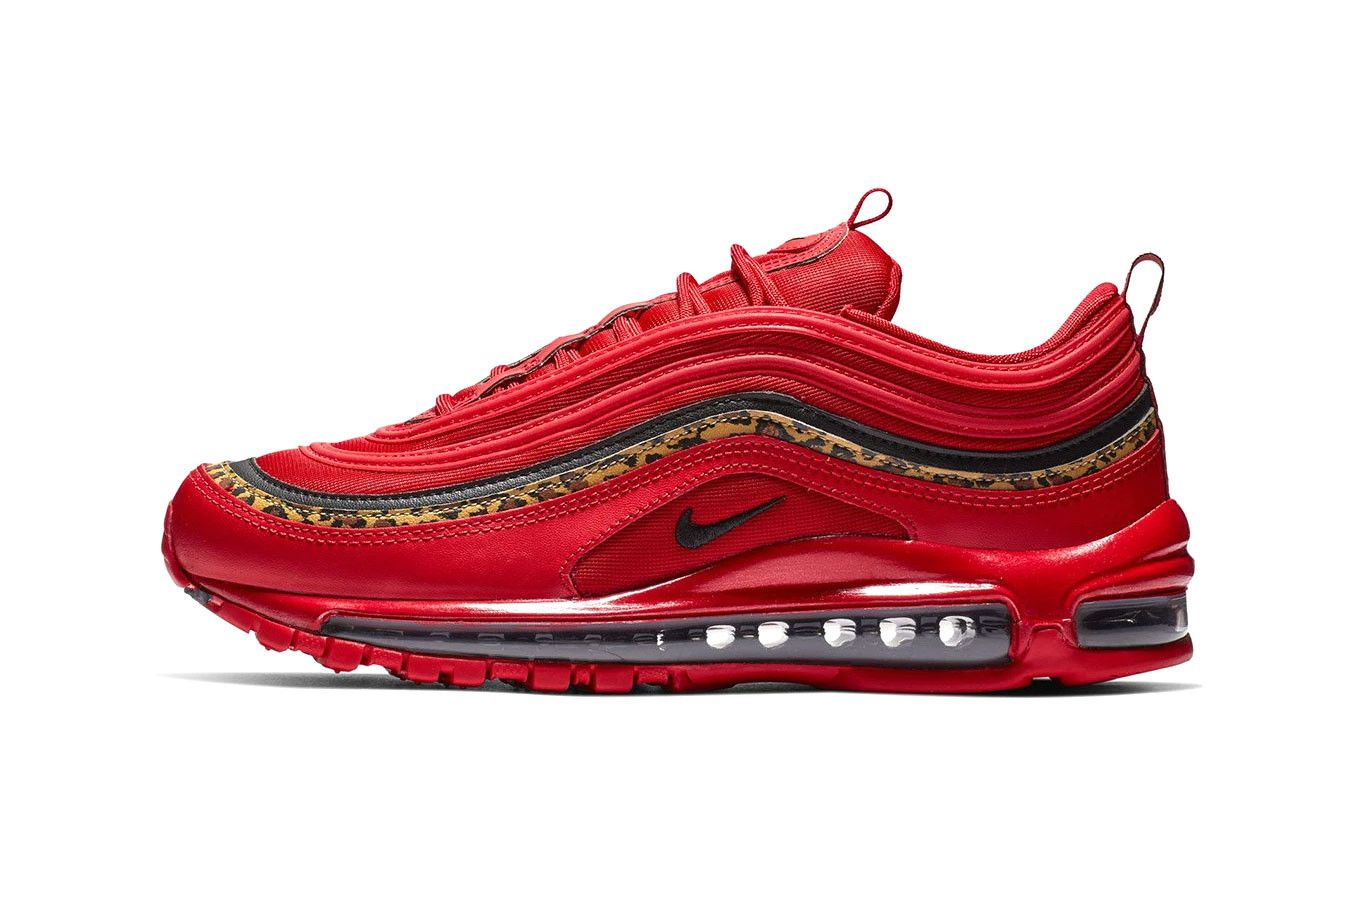 Nike Air Max 97 Red Leather & Leopard Print – Head Jordan